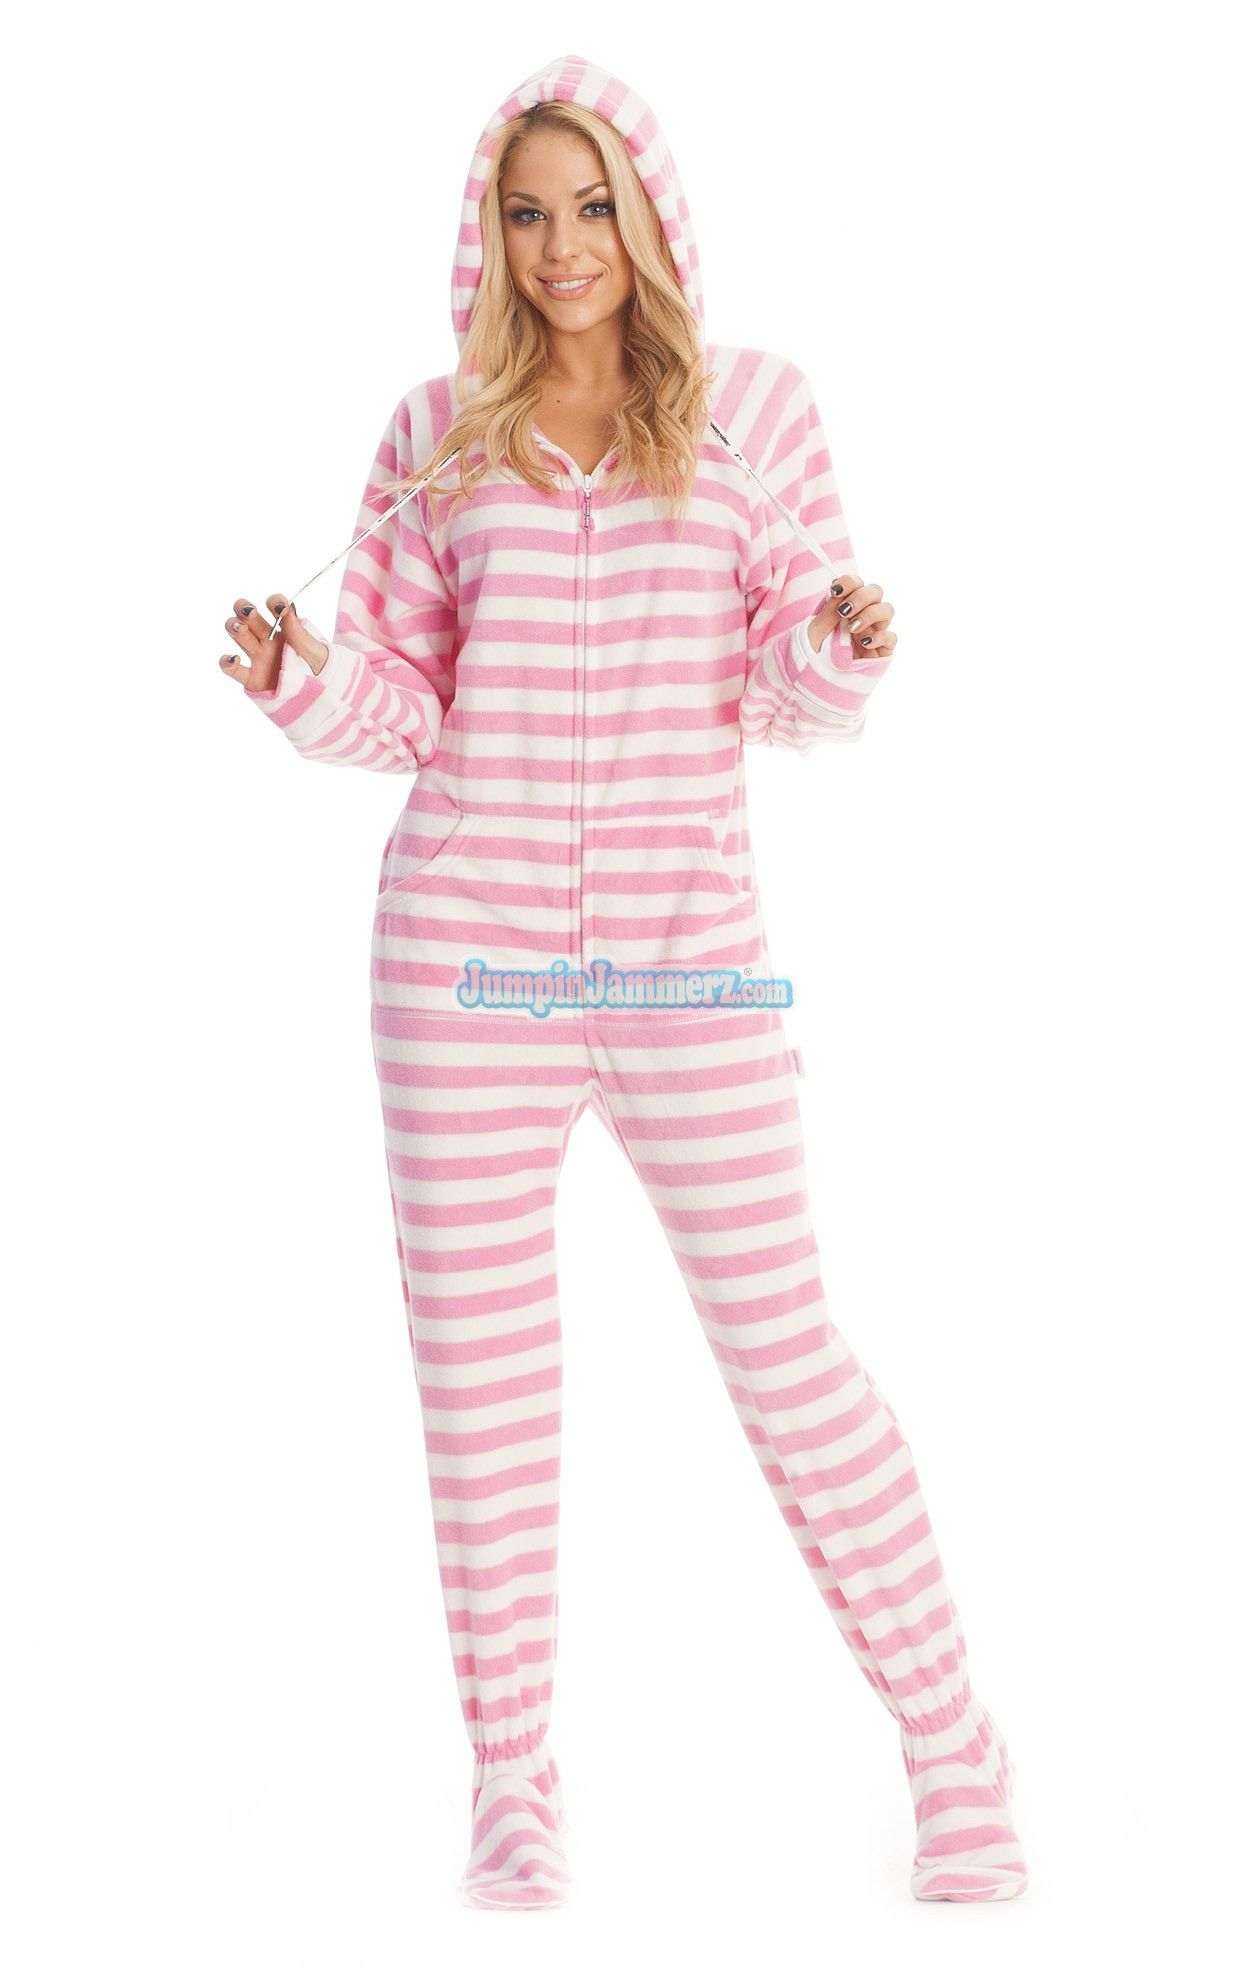 bfe74dd4b Purchase Pink Cotton Stripes Adult Onesie Online